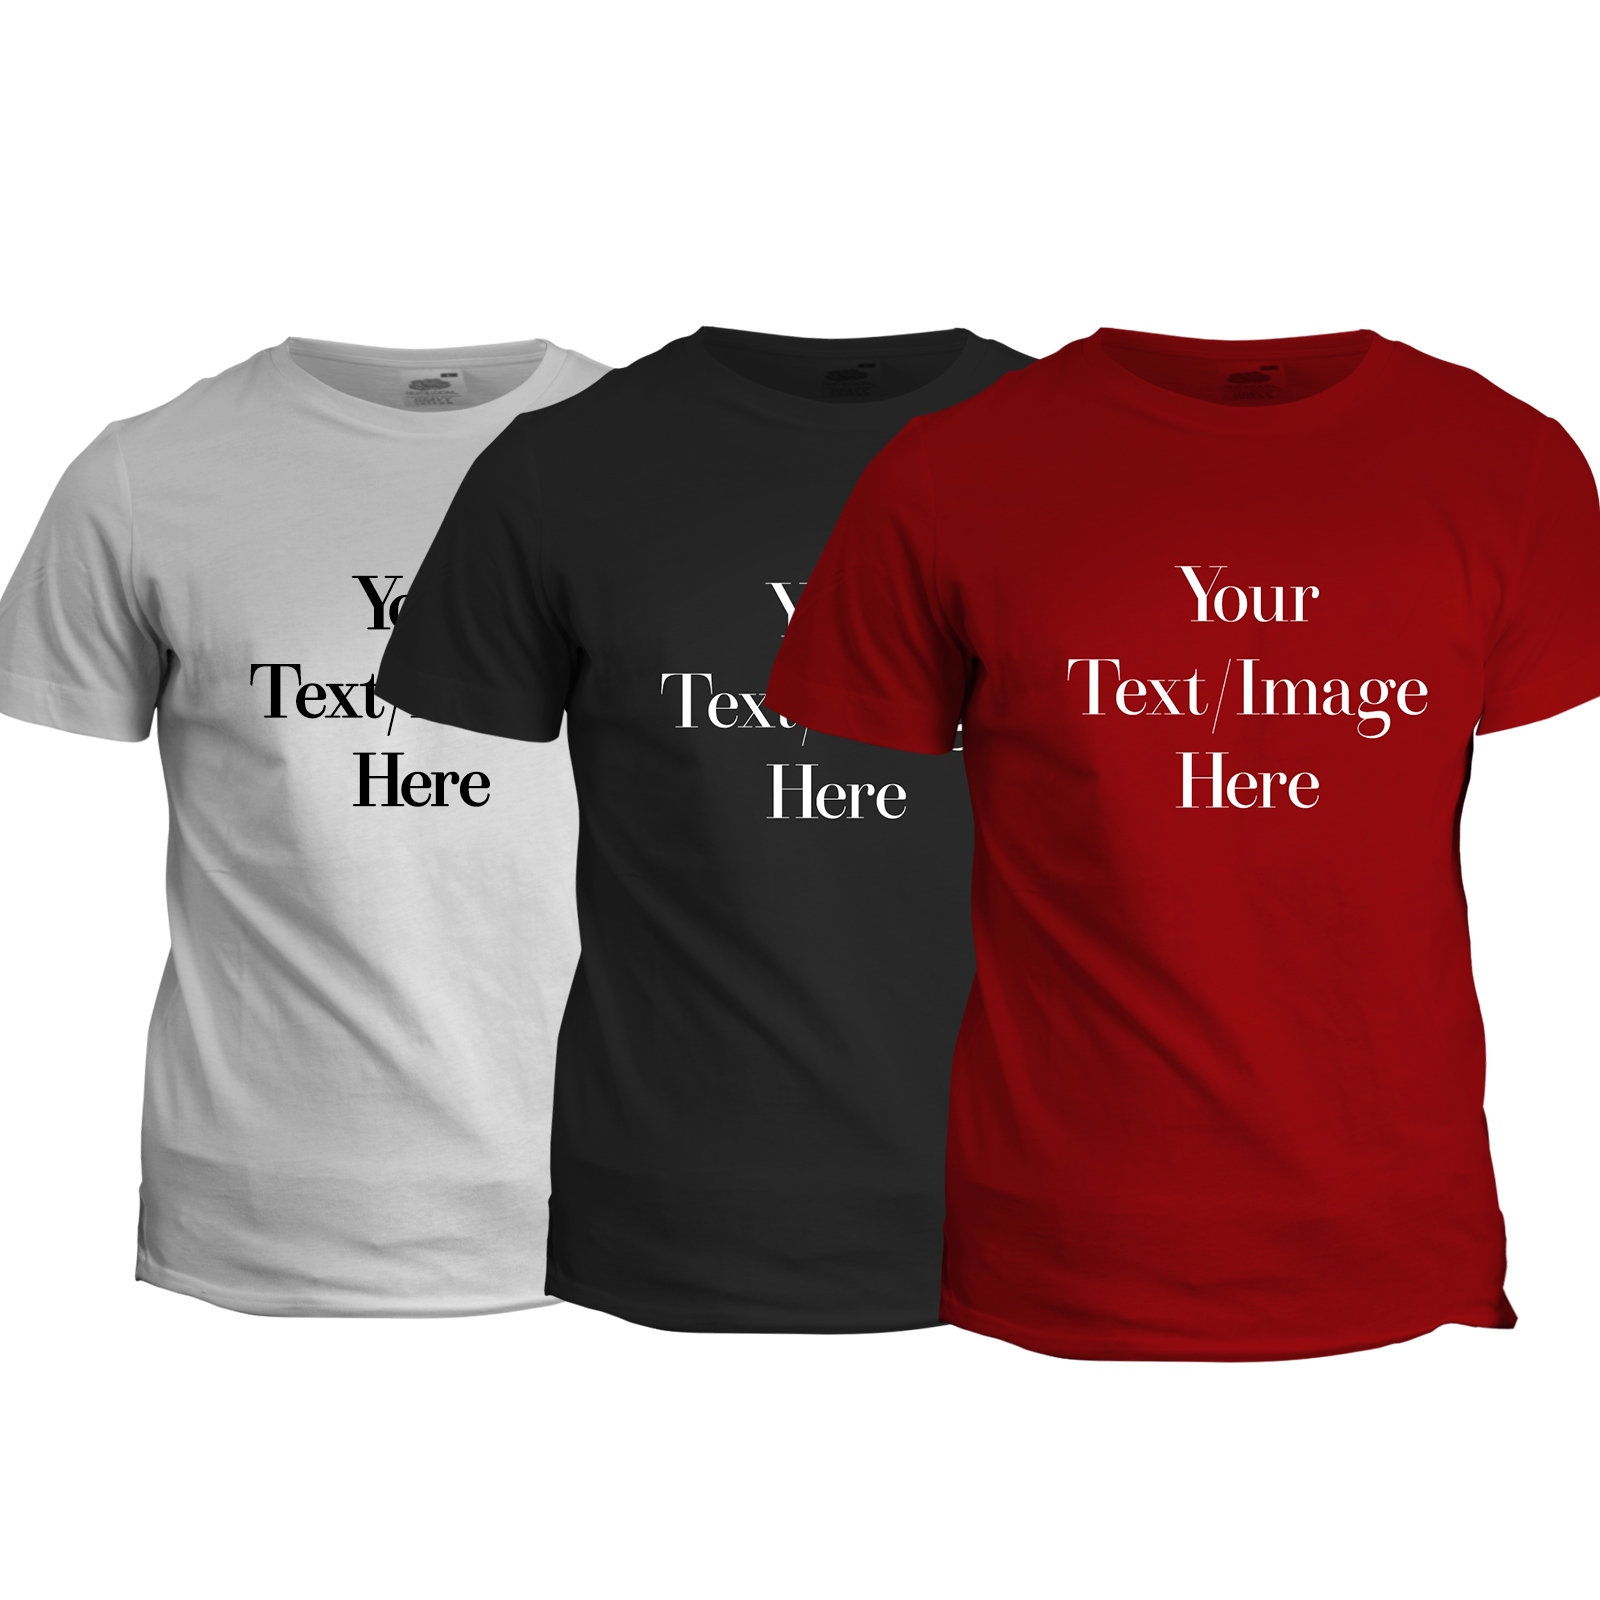 Custom t shirts t shirt design printing vistaprint one for Vistaprint custom t shirts